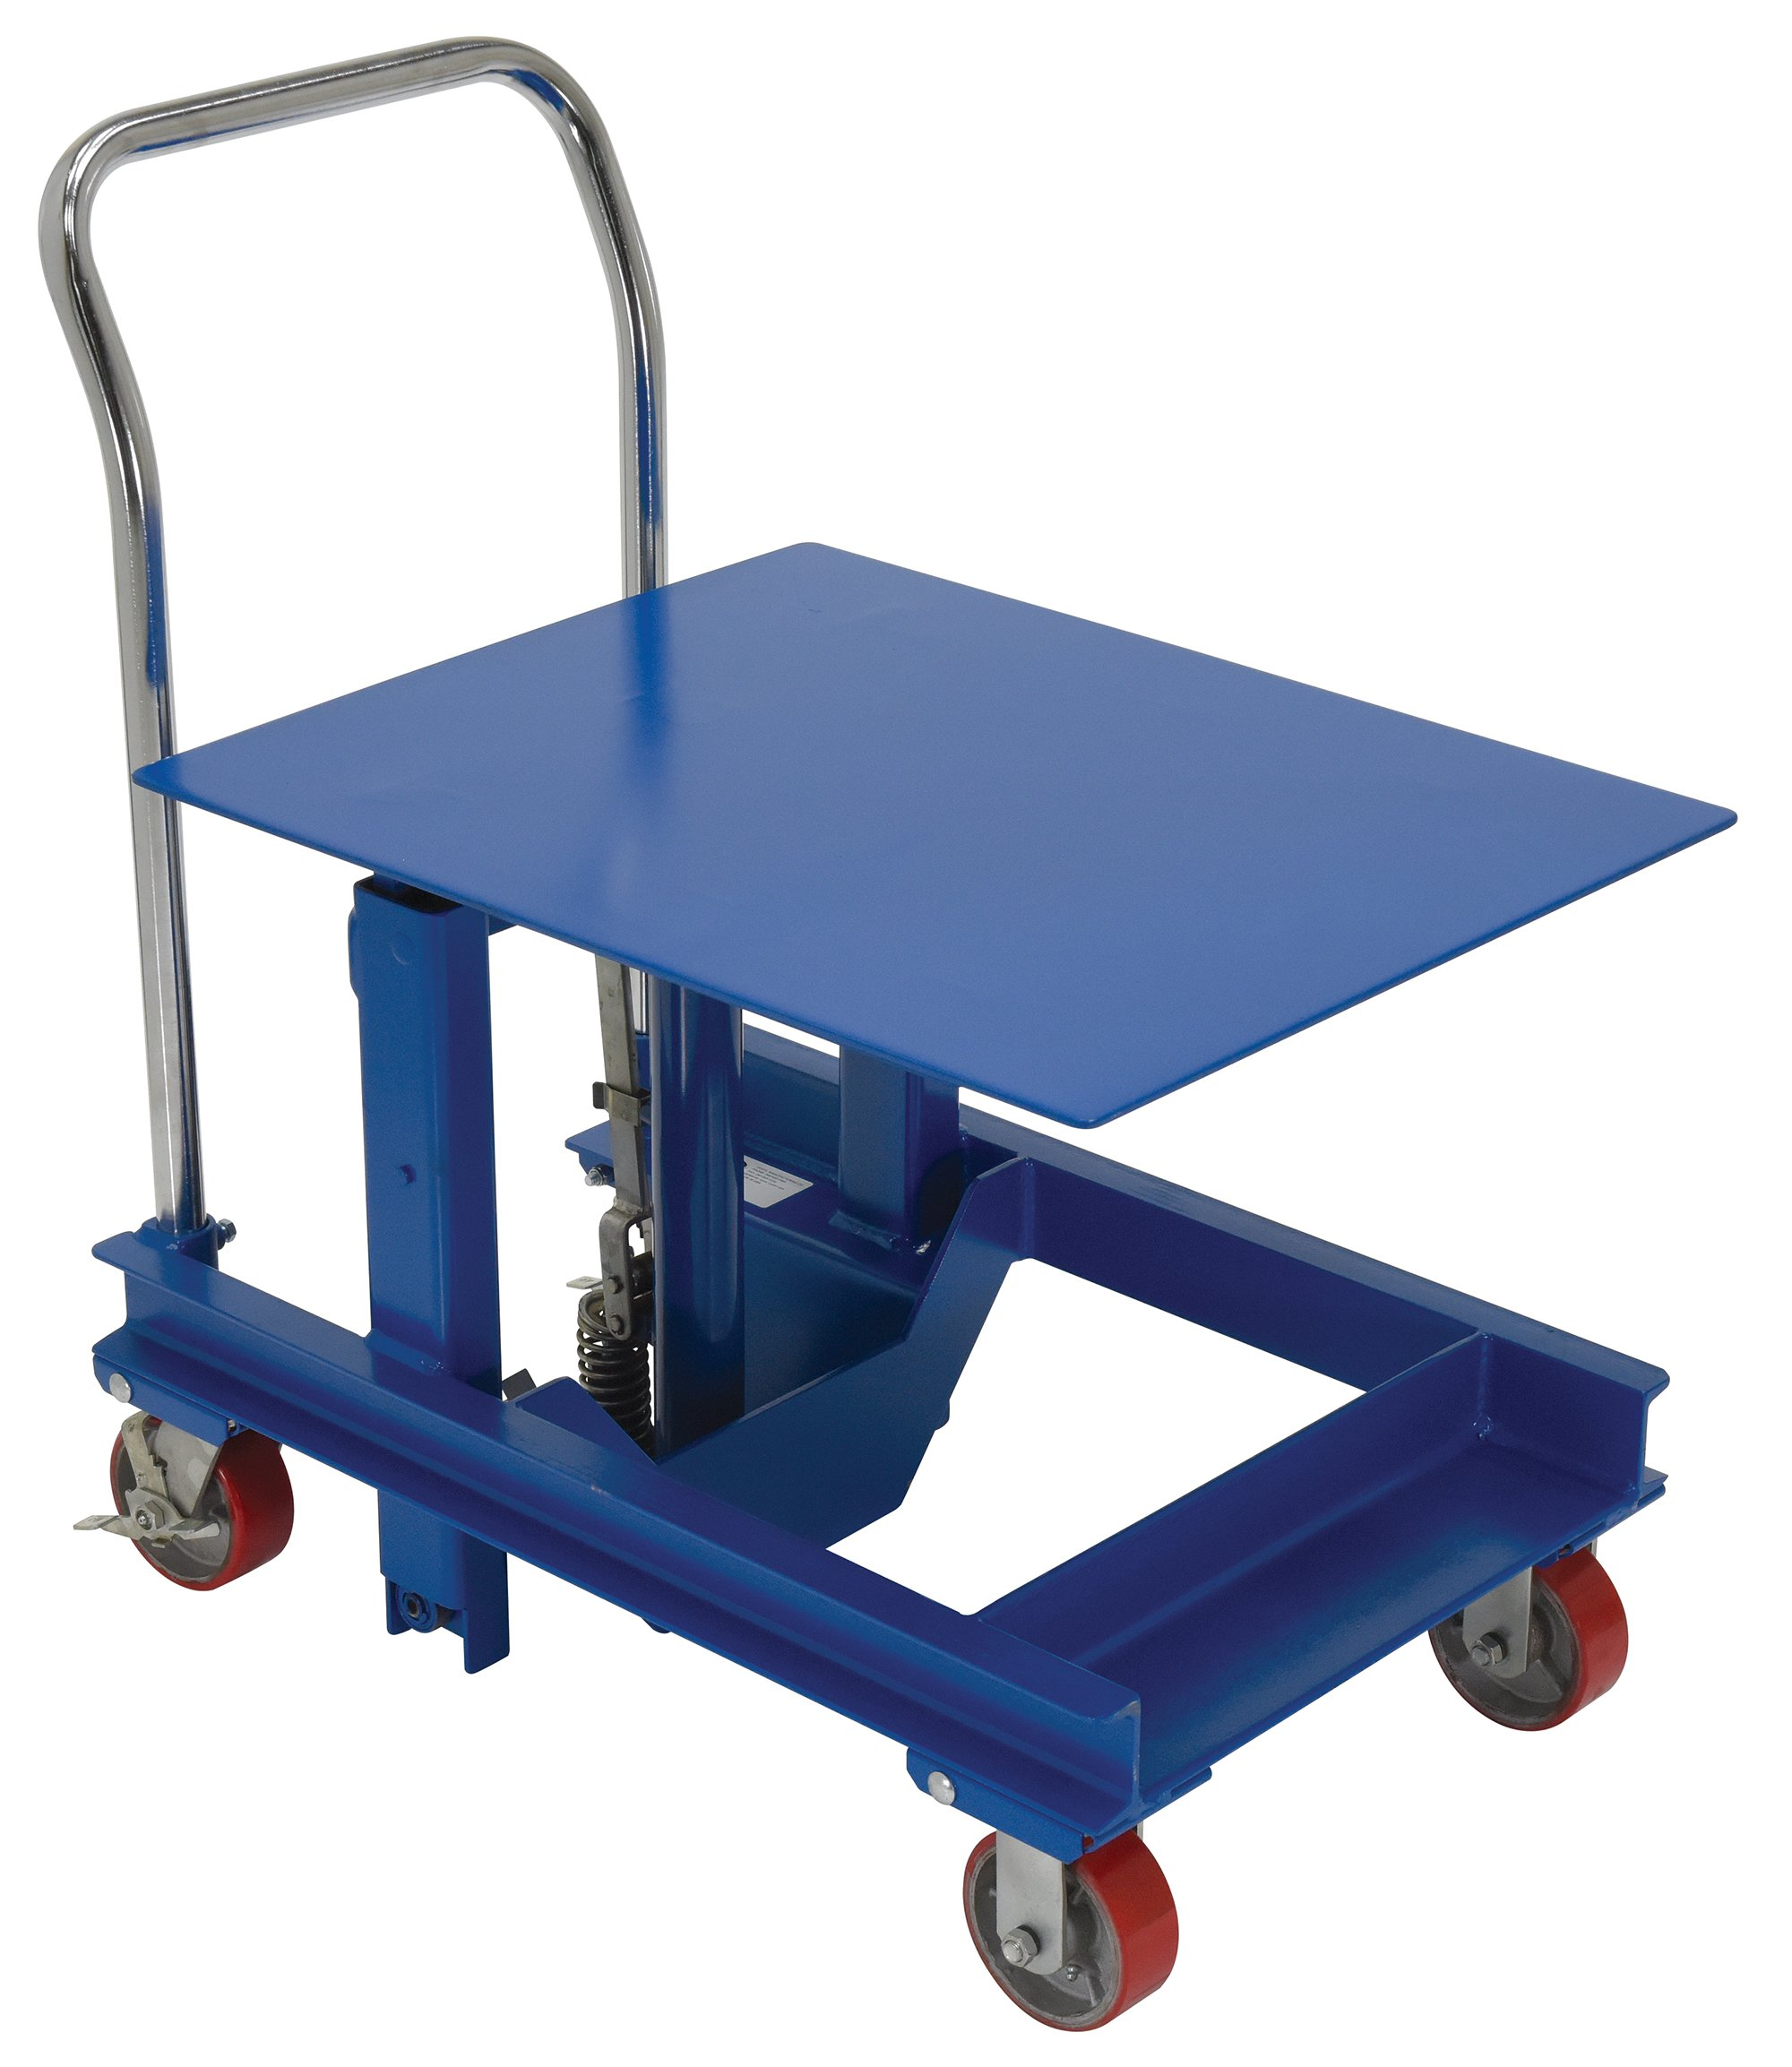 Vestil DIE-2430-36 Ergonomic Manual Die Table, 45.75'' x 24'' x 44.25'', 302 lb.